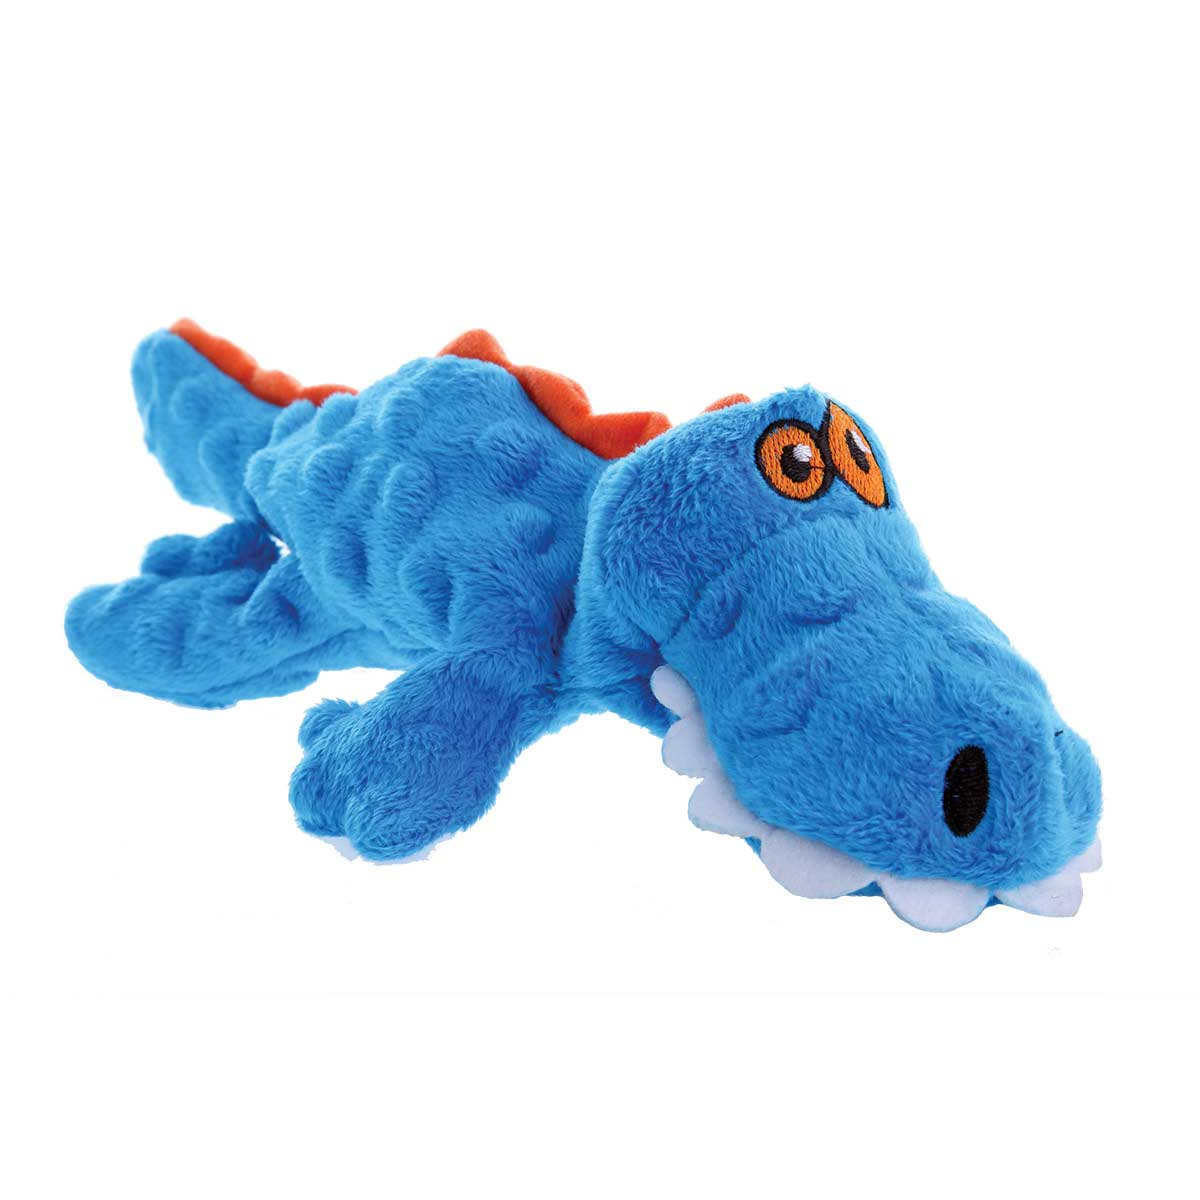 Large 12 inch Hear Doggy Soft Blue Gator Toy for Dogs